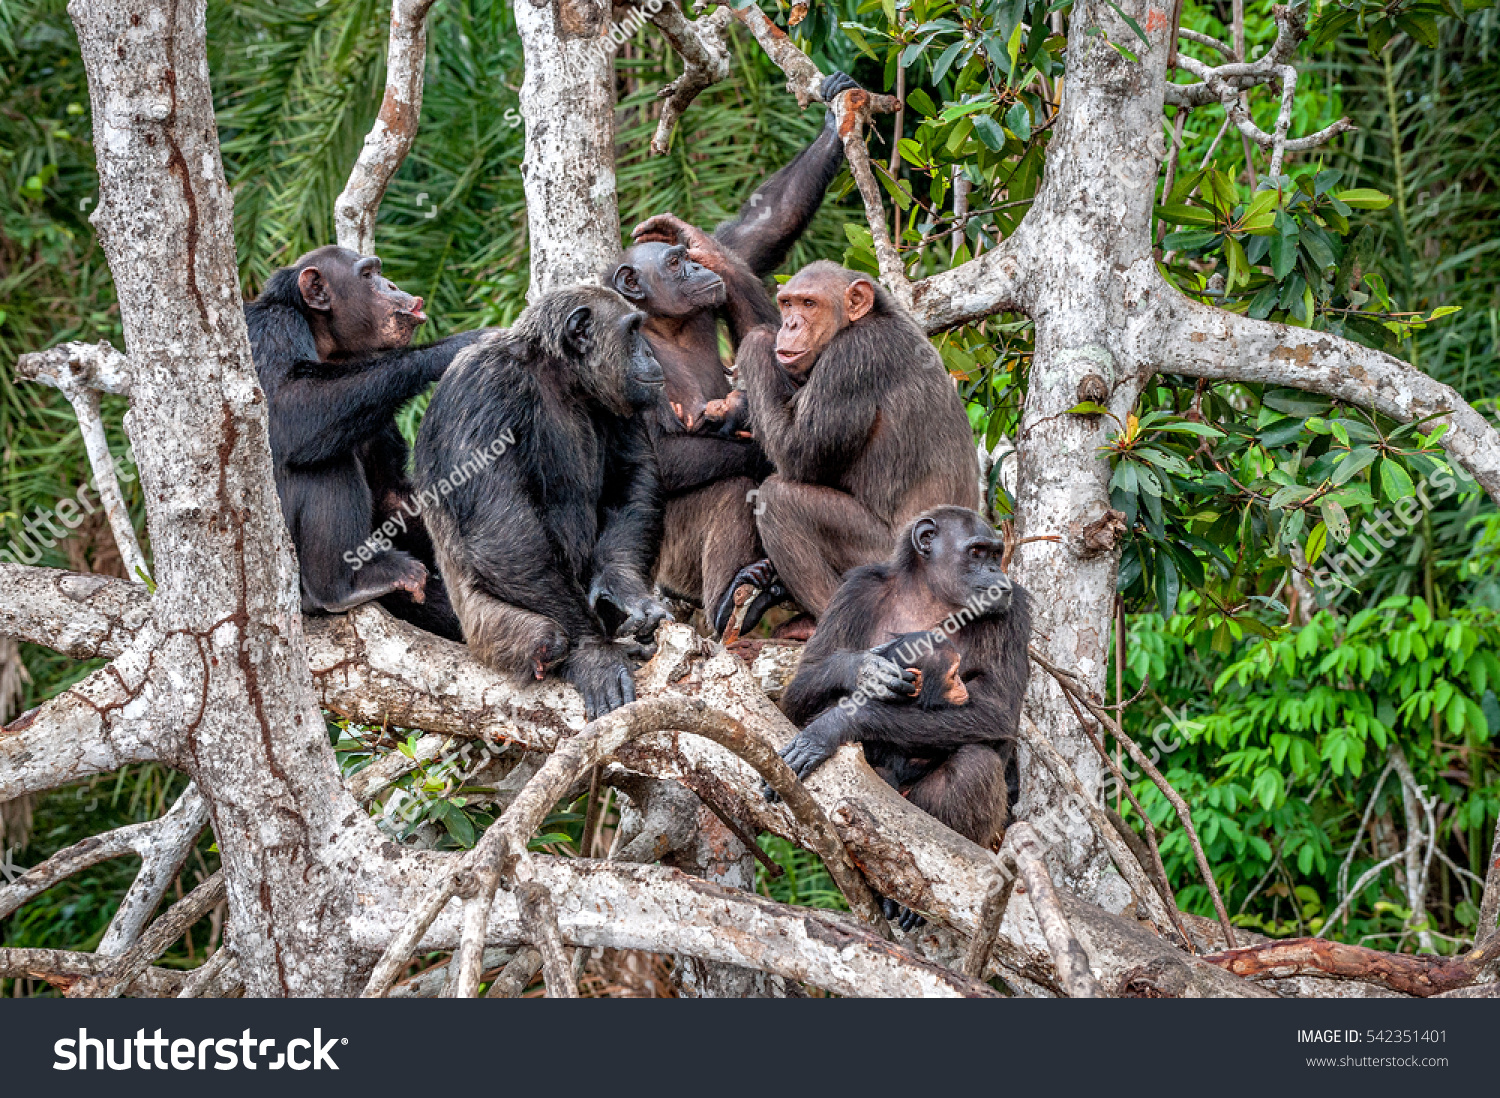 Group of Chimpanzee Pan troglodytes on mangrove branches Mother-chimpanzee sits and holds on hands of the cub Chimpanzees chimps Pan troglodytes troglodytes Congo Africa